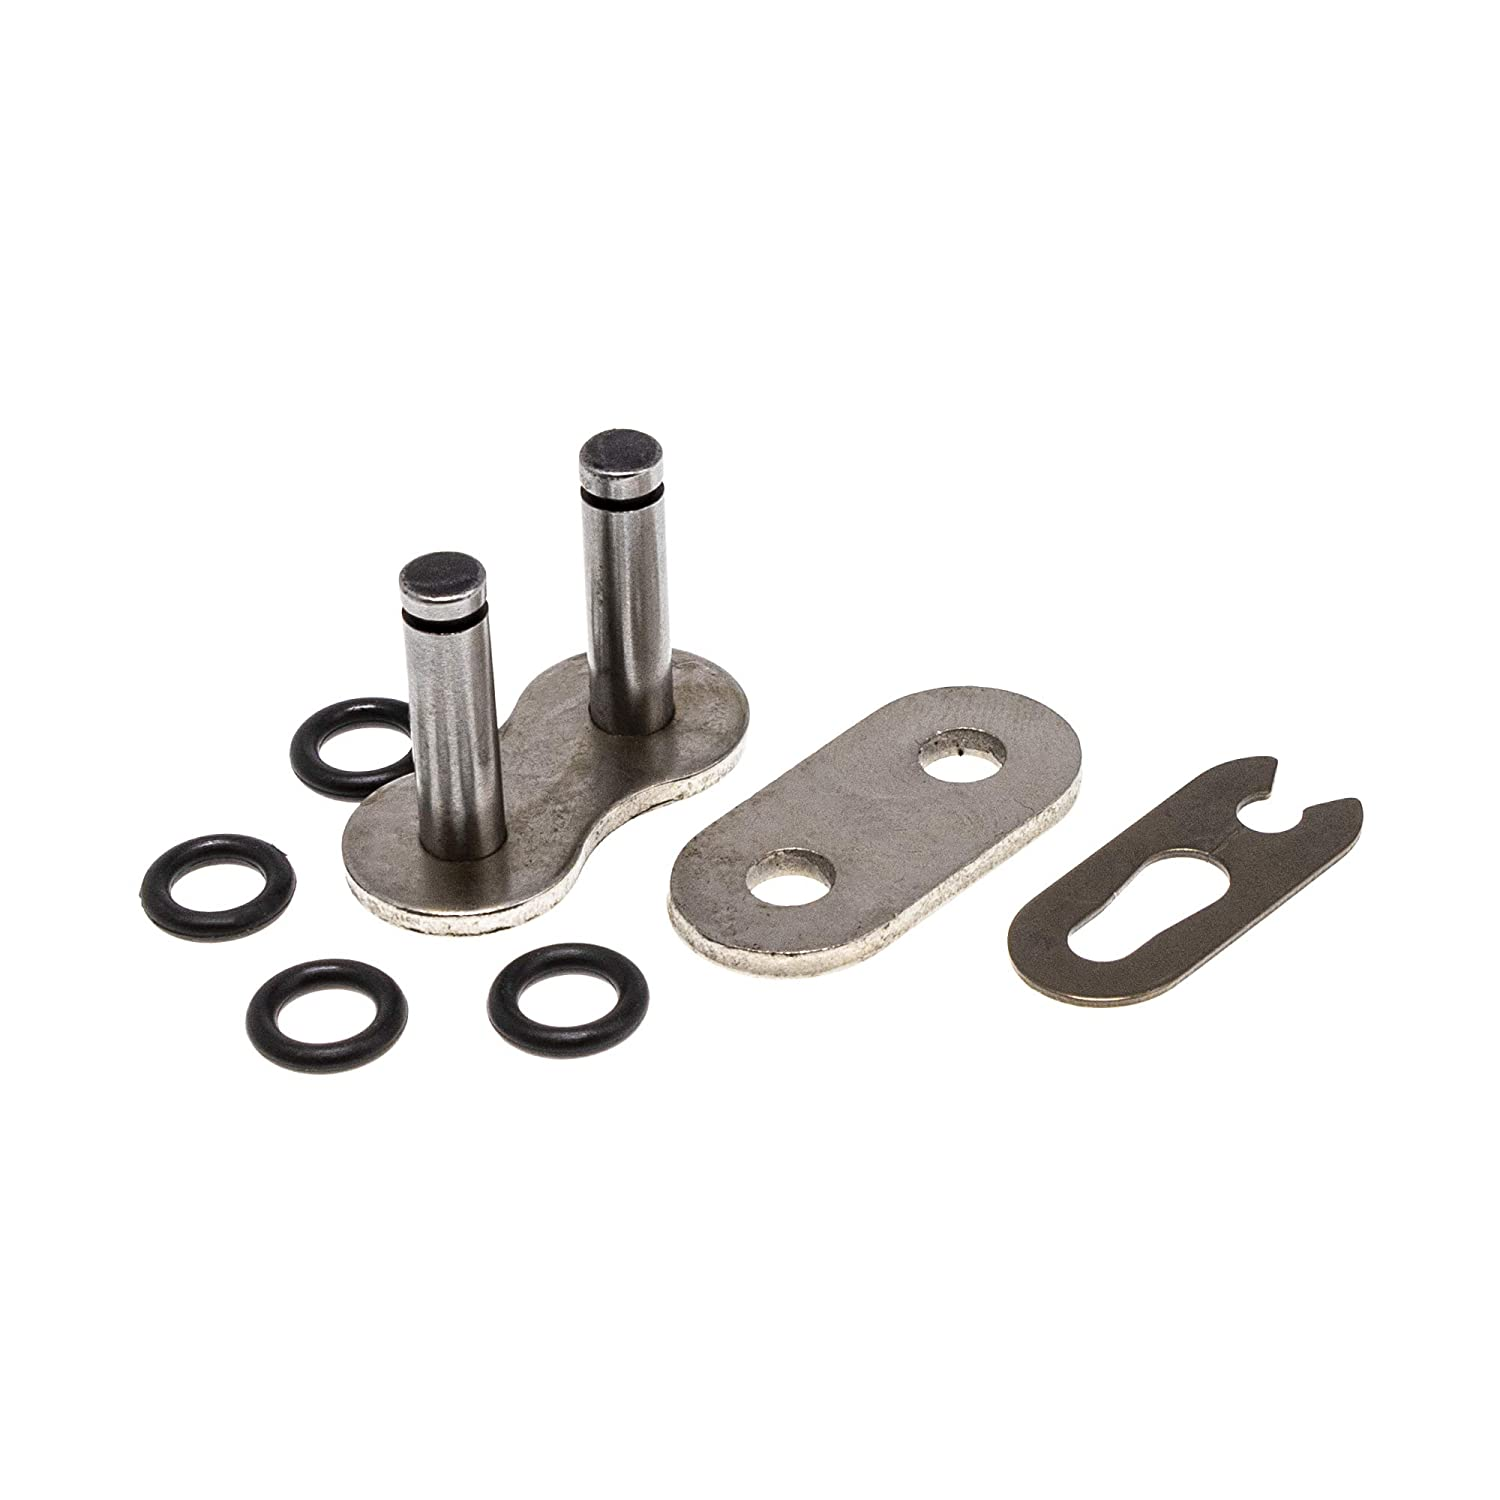 Niche 520 Drive Chain 76 Links O-Ring With Connecting Master Link for Motorcycle ATV Dirt Bike